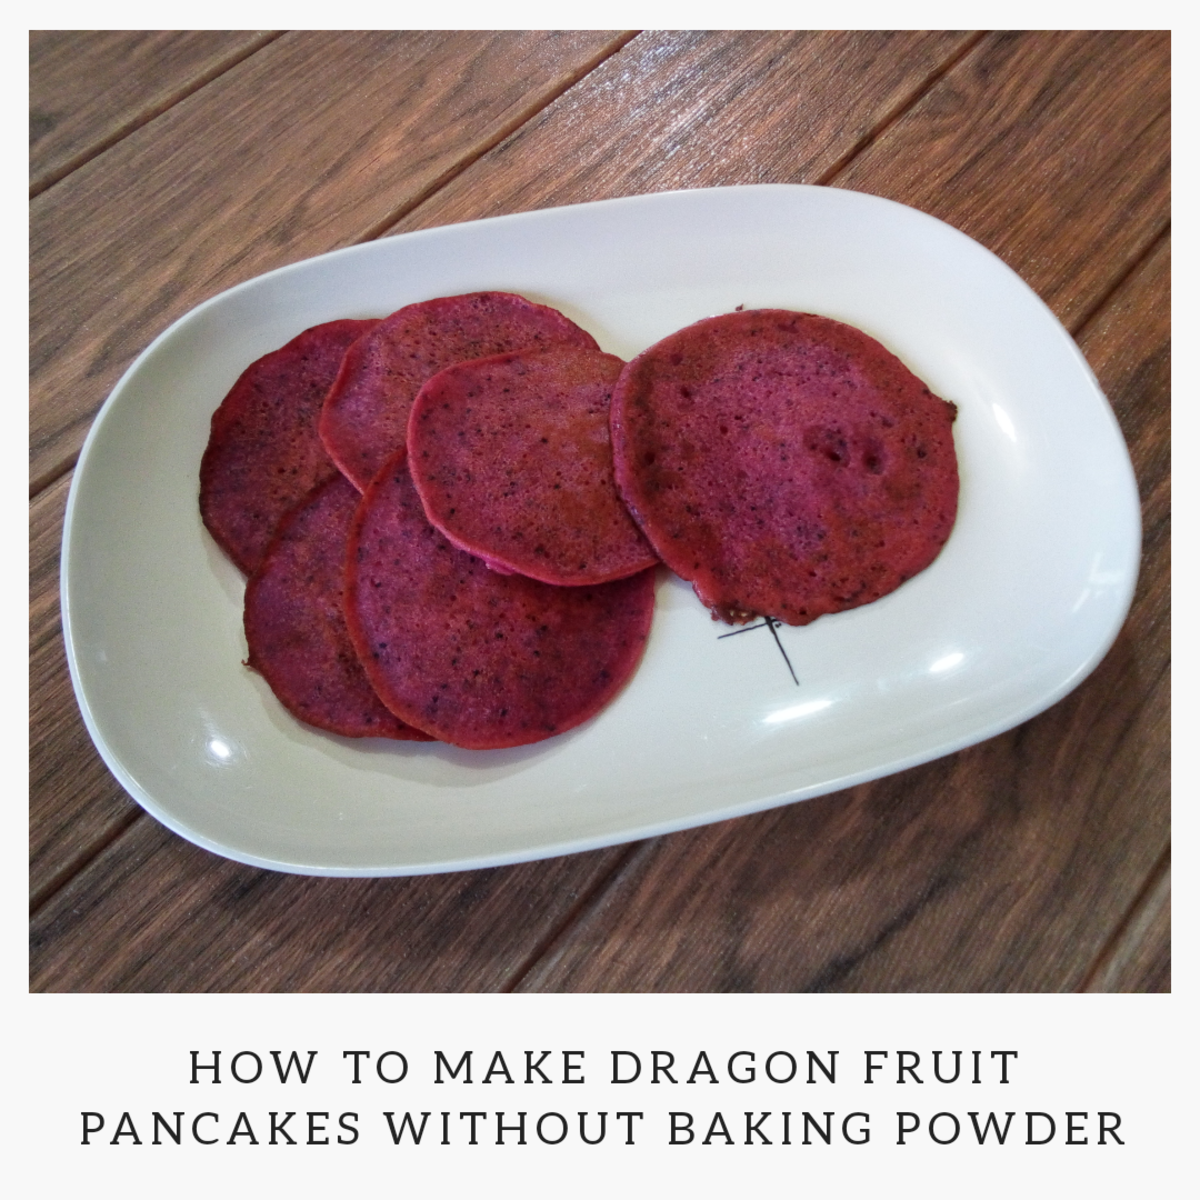 How to Make Dragon Fruit Pancakes Without Baking Powder